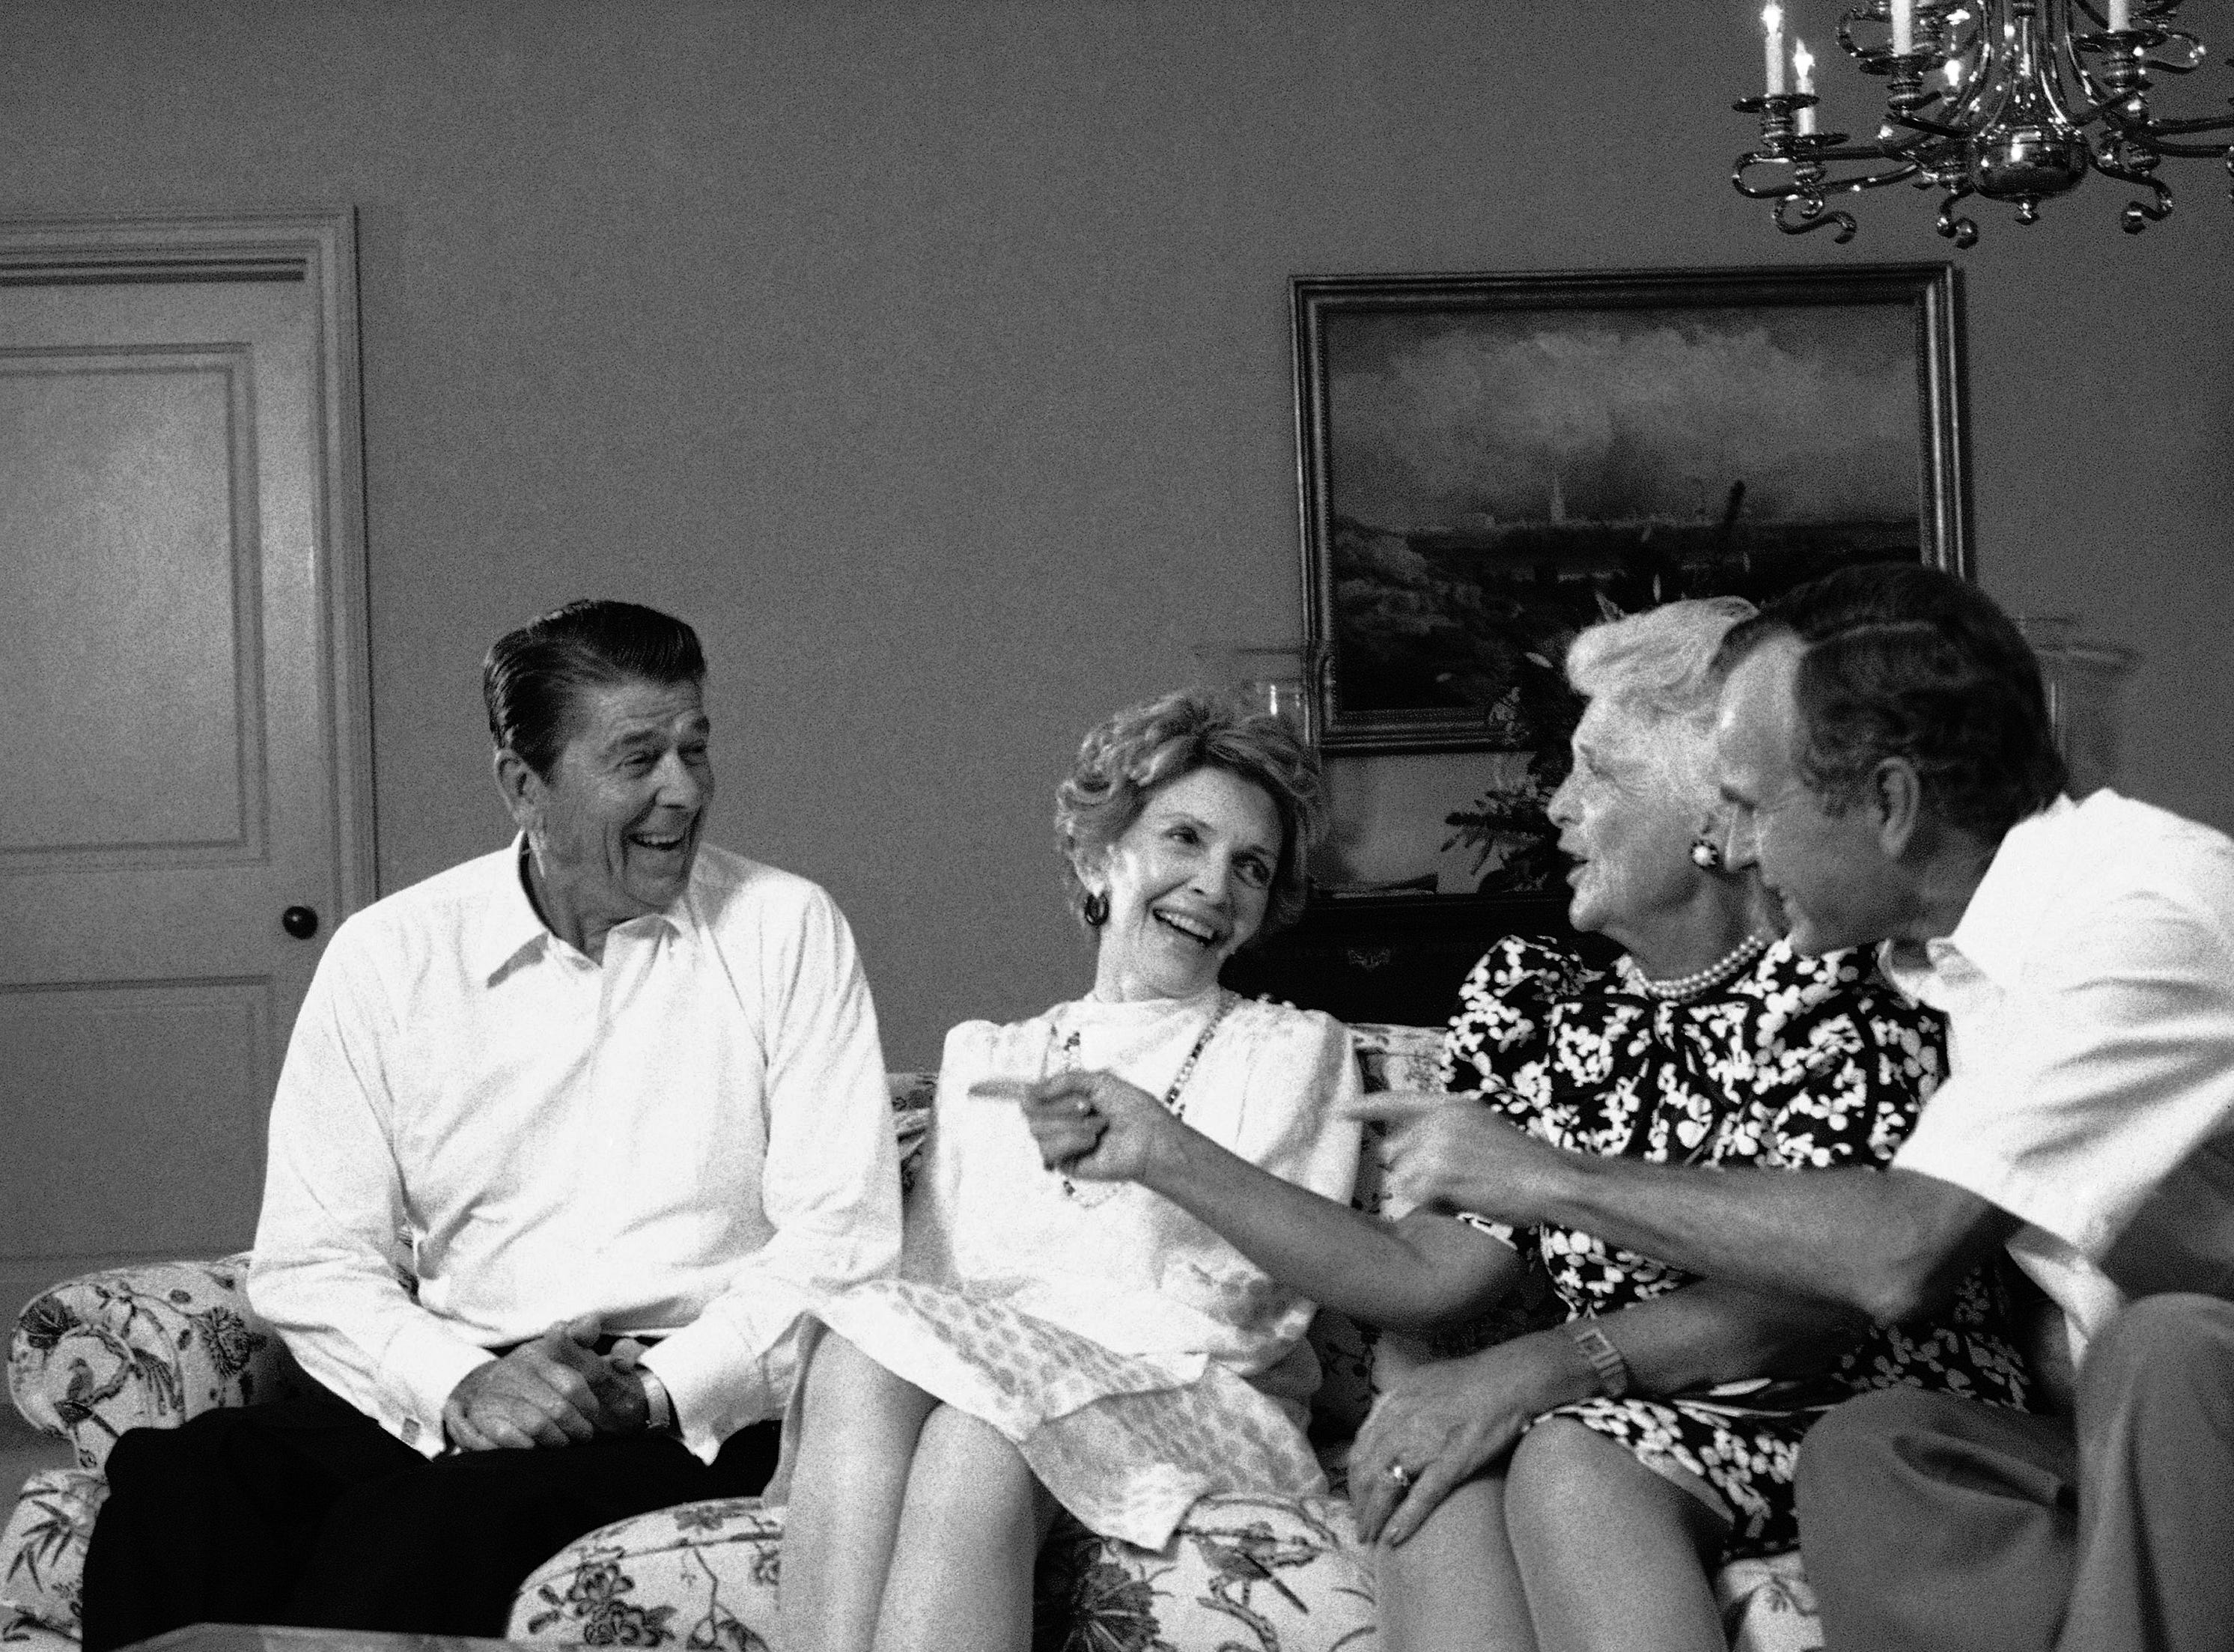 President Reagan shares a laugh with first lady Nancy Reagan and Vice President and Mrs. George Bush at night on Wednesday, August 22, 1984 in Dallas after the Republican National Convention nominated him for a second term. (AP Photo/J. Scott Applewhite)